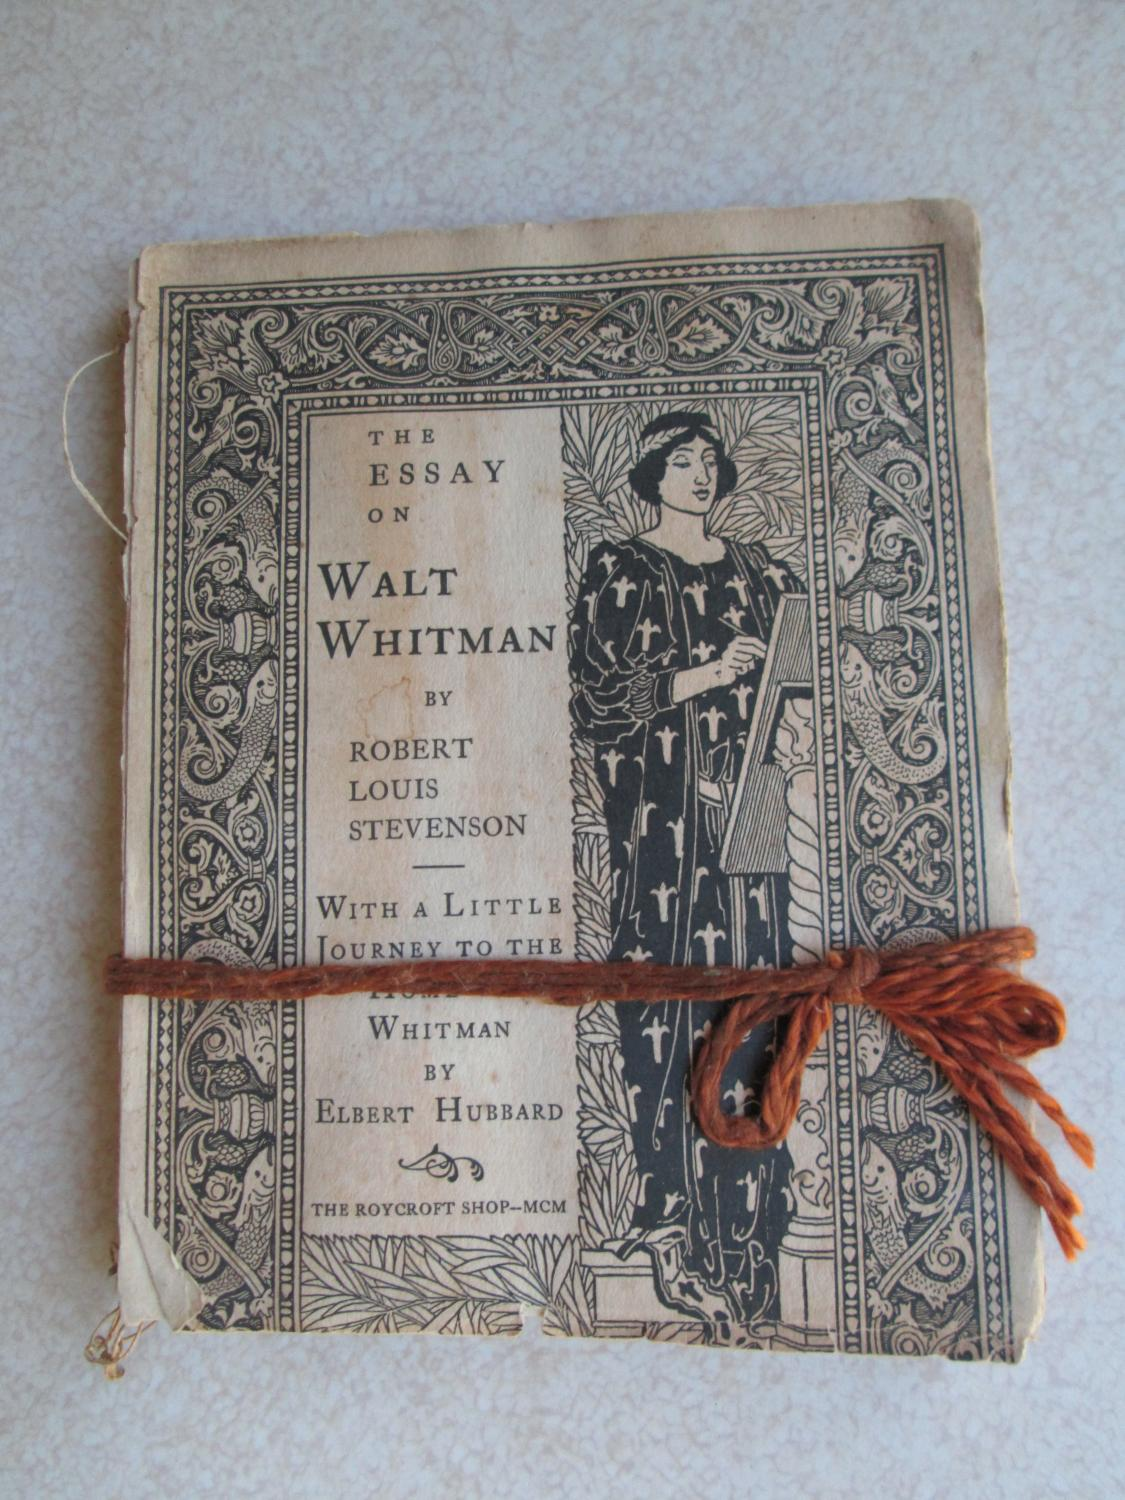 the essay on walt whitman a little journey to home of the essay on walt whitman a little journey to home of whitman robert